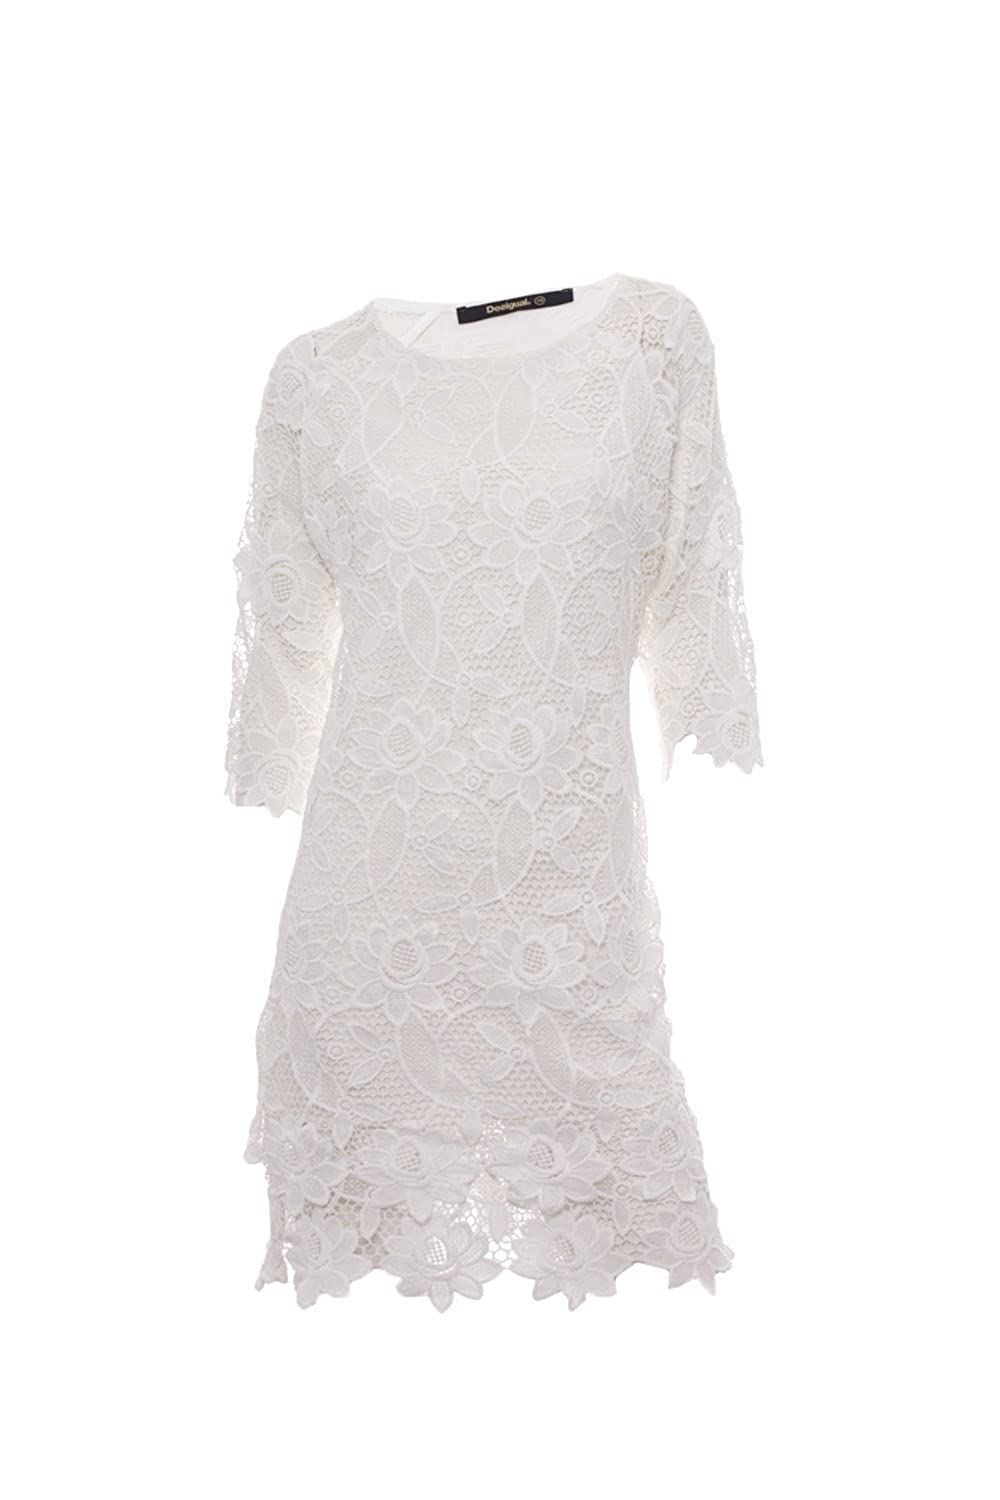 Desigual Dress Selsi White Crochet Lace 74v2wk6 At Amazon Womens